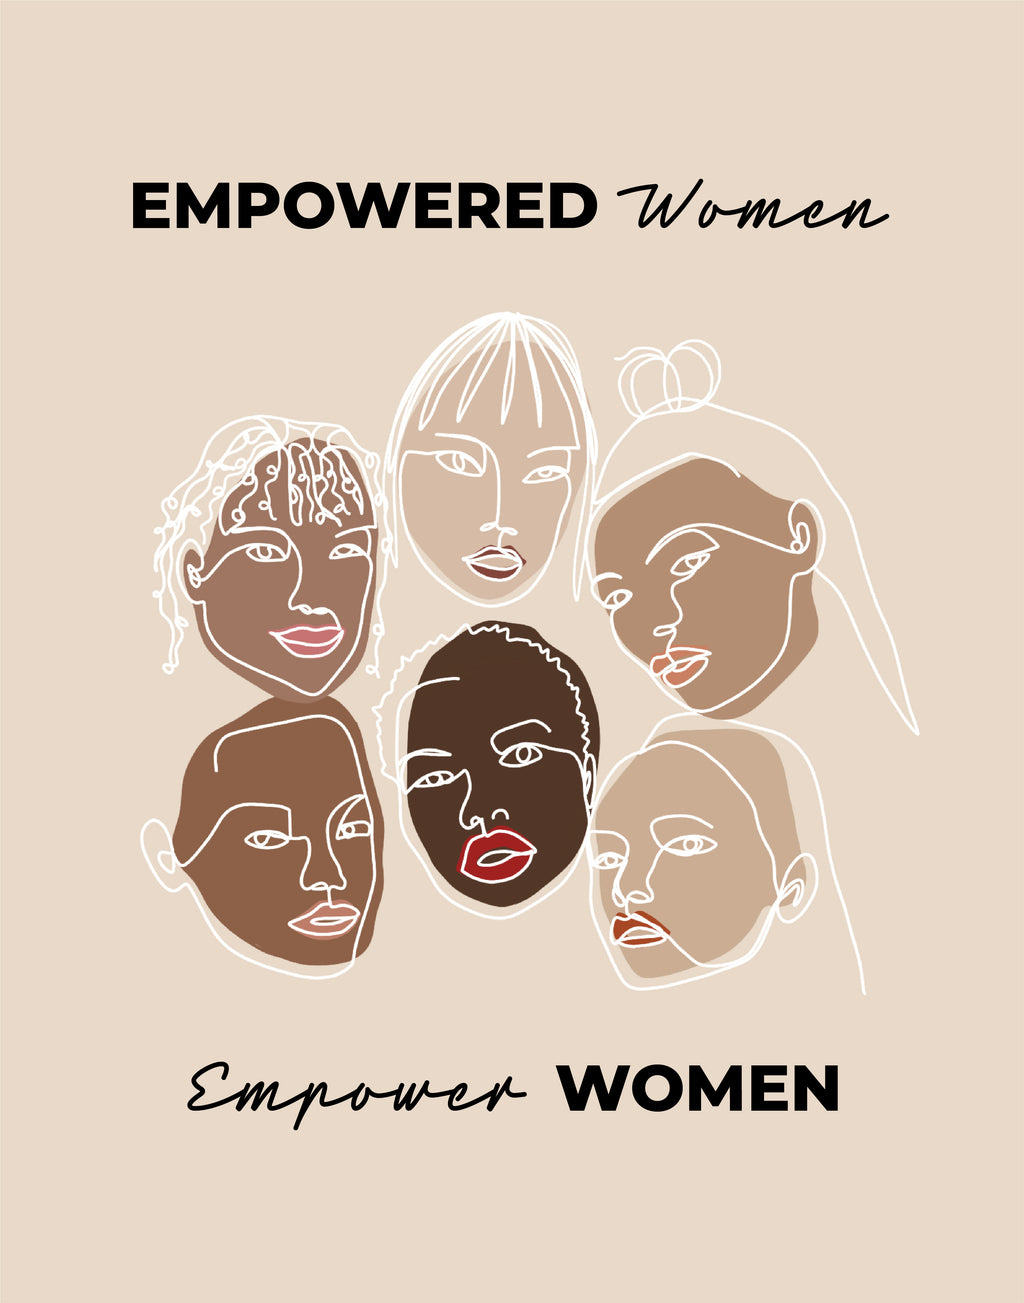 FREE DOWNLOAD: Empower Women